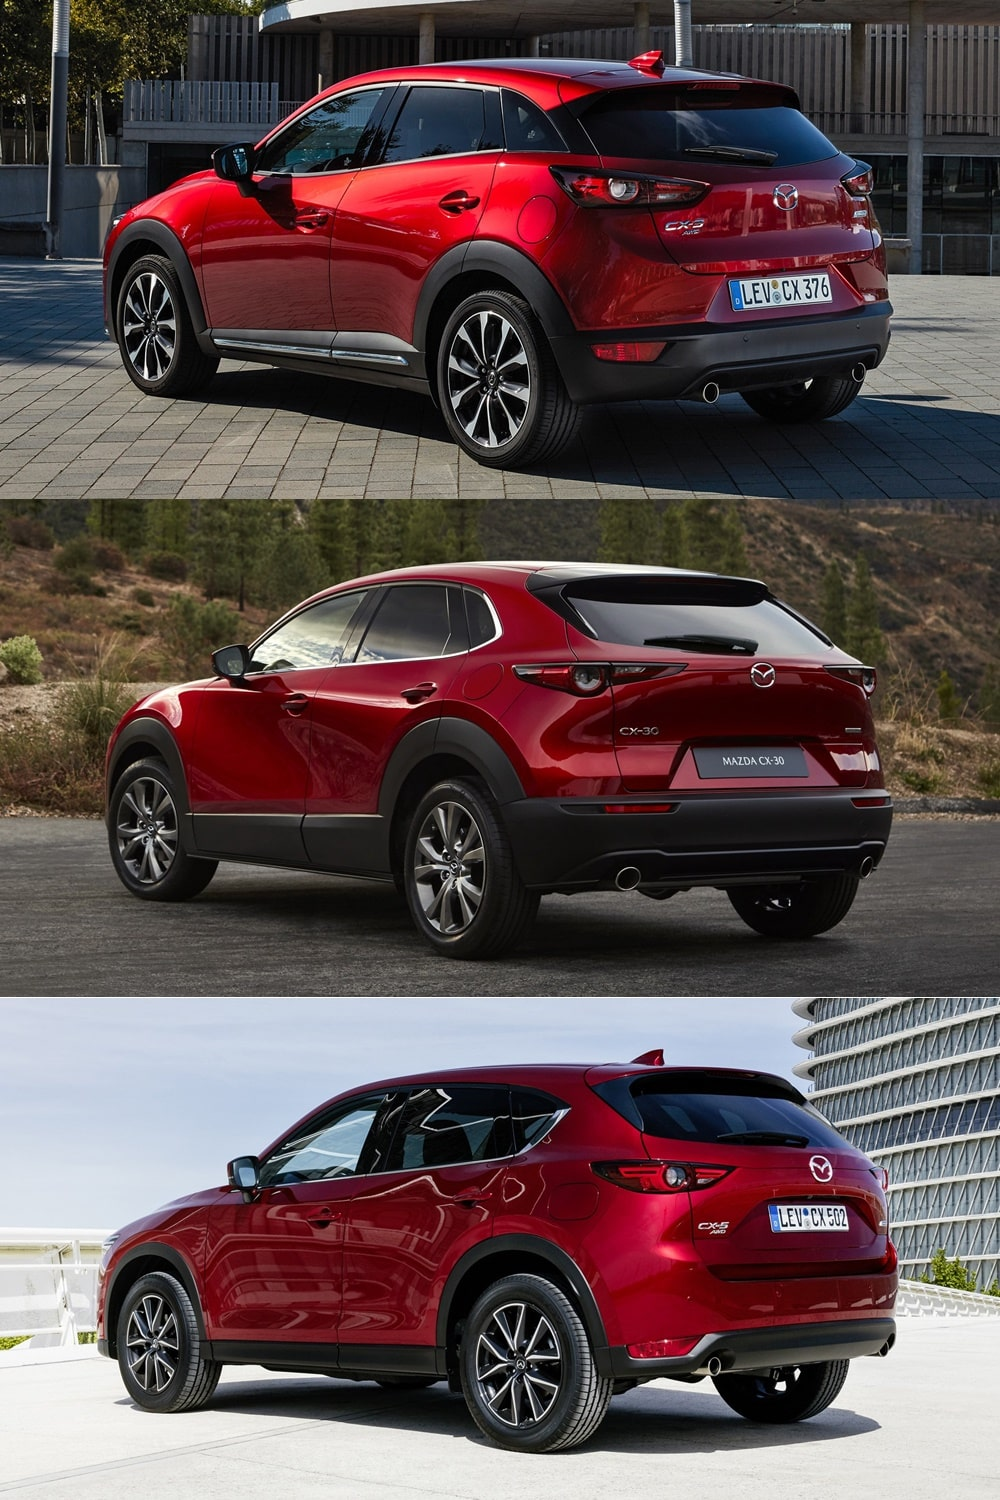 Mazda Cx 3 >> Comparativa visual Mazda CX-3 vs. CX-30 vs. CX-5